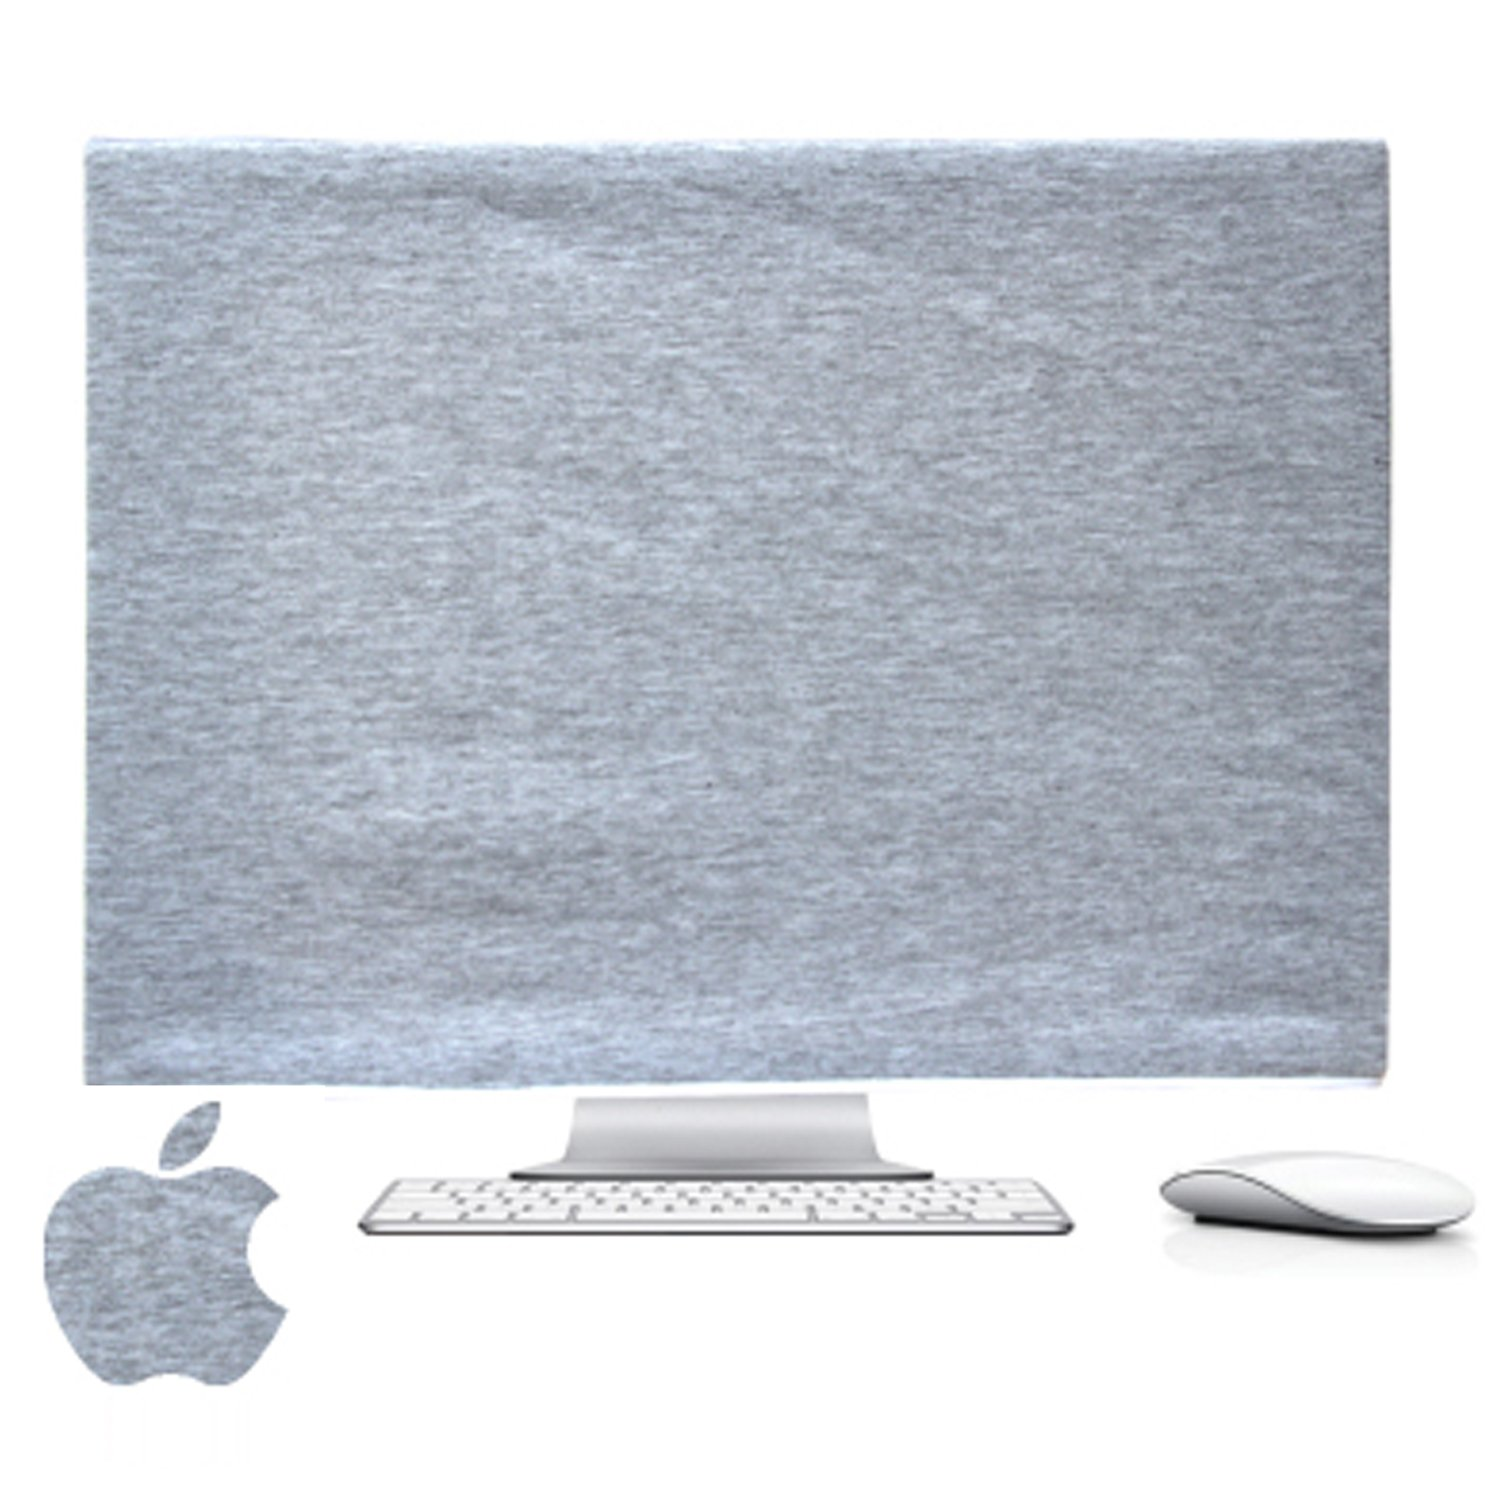 """Handmade! Imac 21.5 Inch Dust Cover,Imac Dust Cover 21.5"""",Special Computer Dust Cover Handmade Monitor Dust Cover Silky Smooth Nonwoven Monitor Dust Cover For Imac 21.5 Inch-iMac iMac Accessories"""